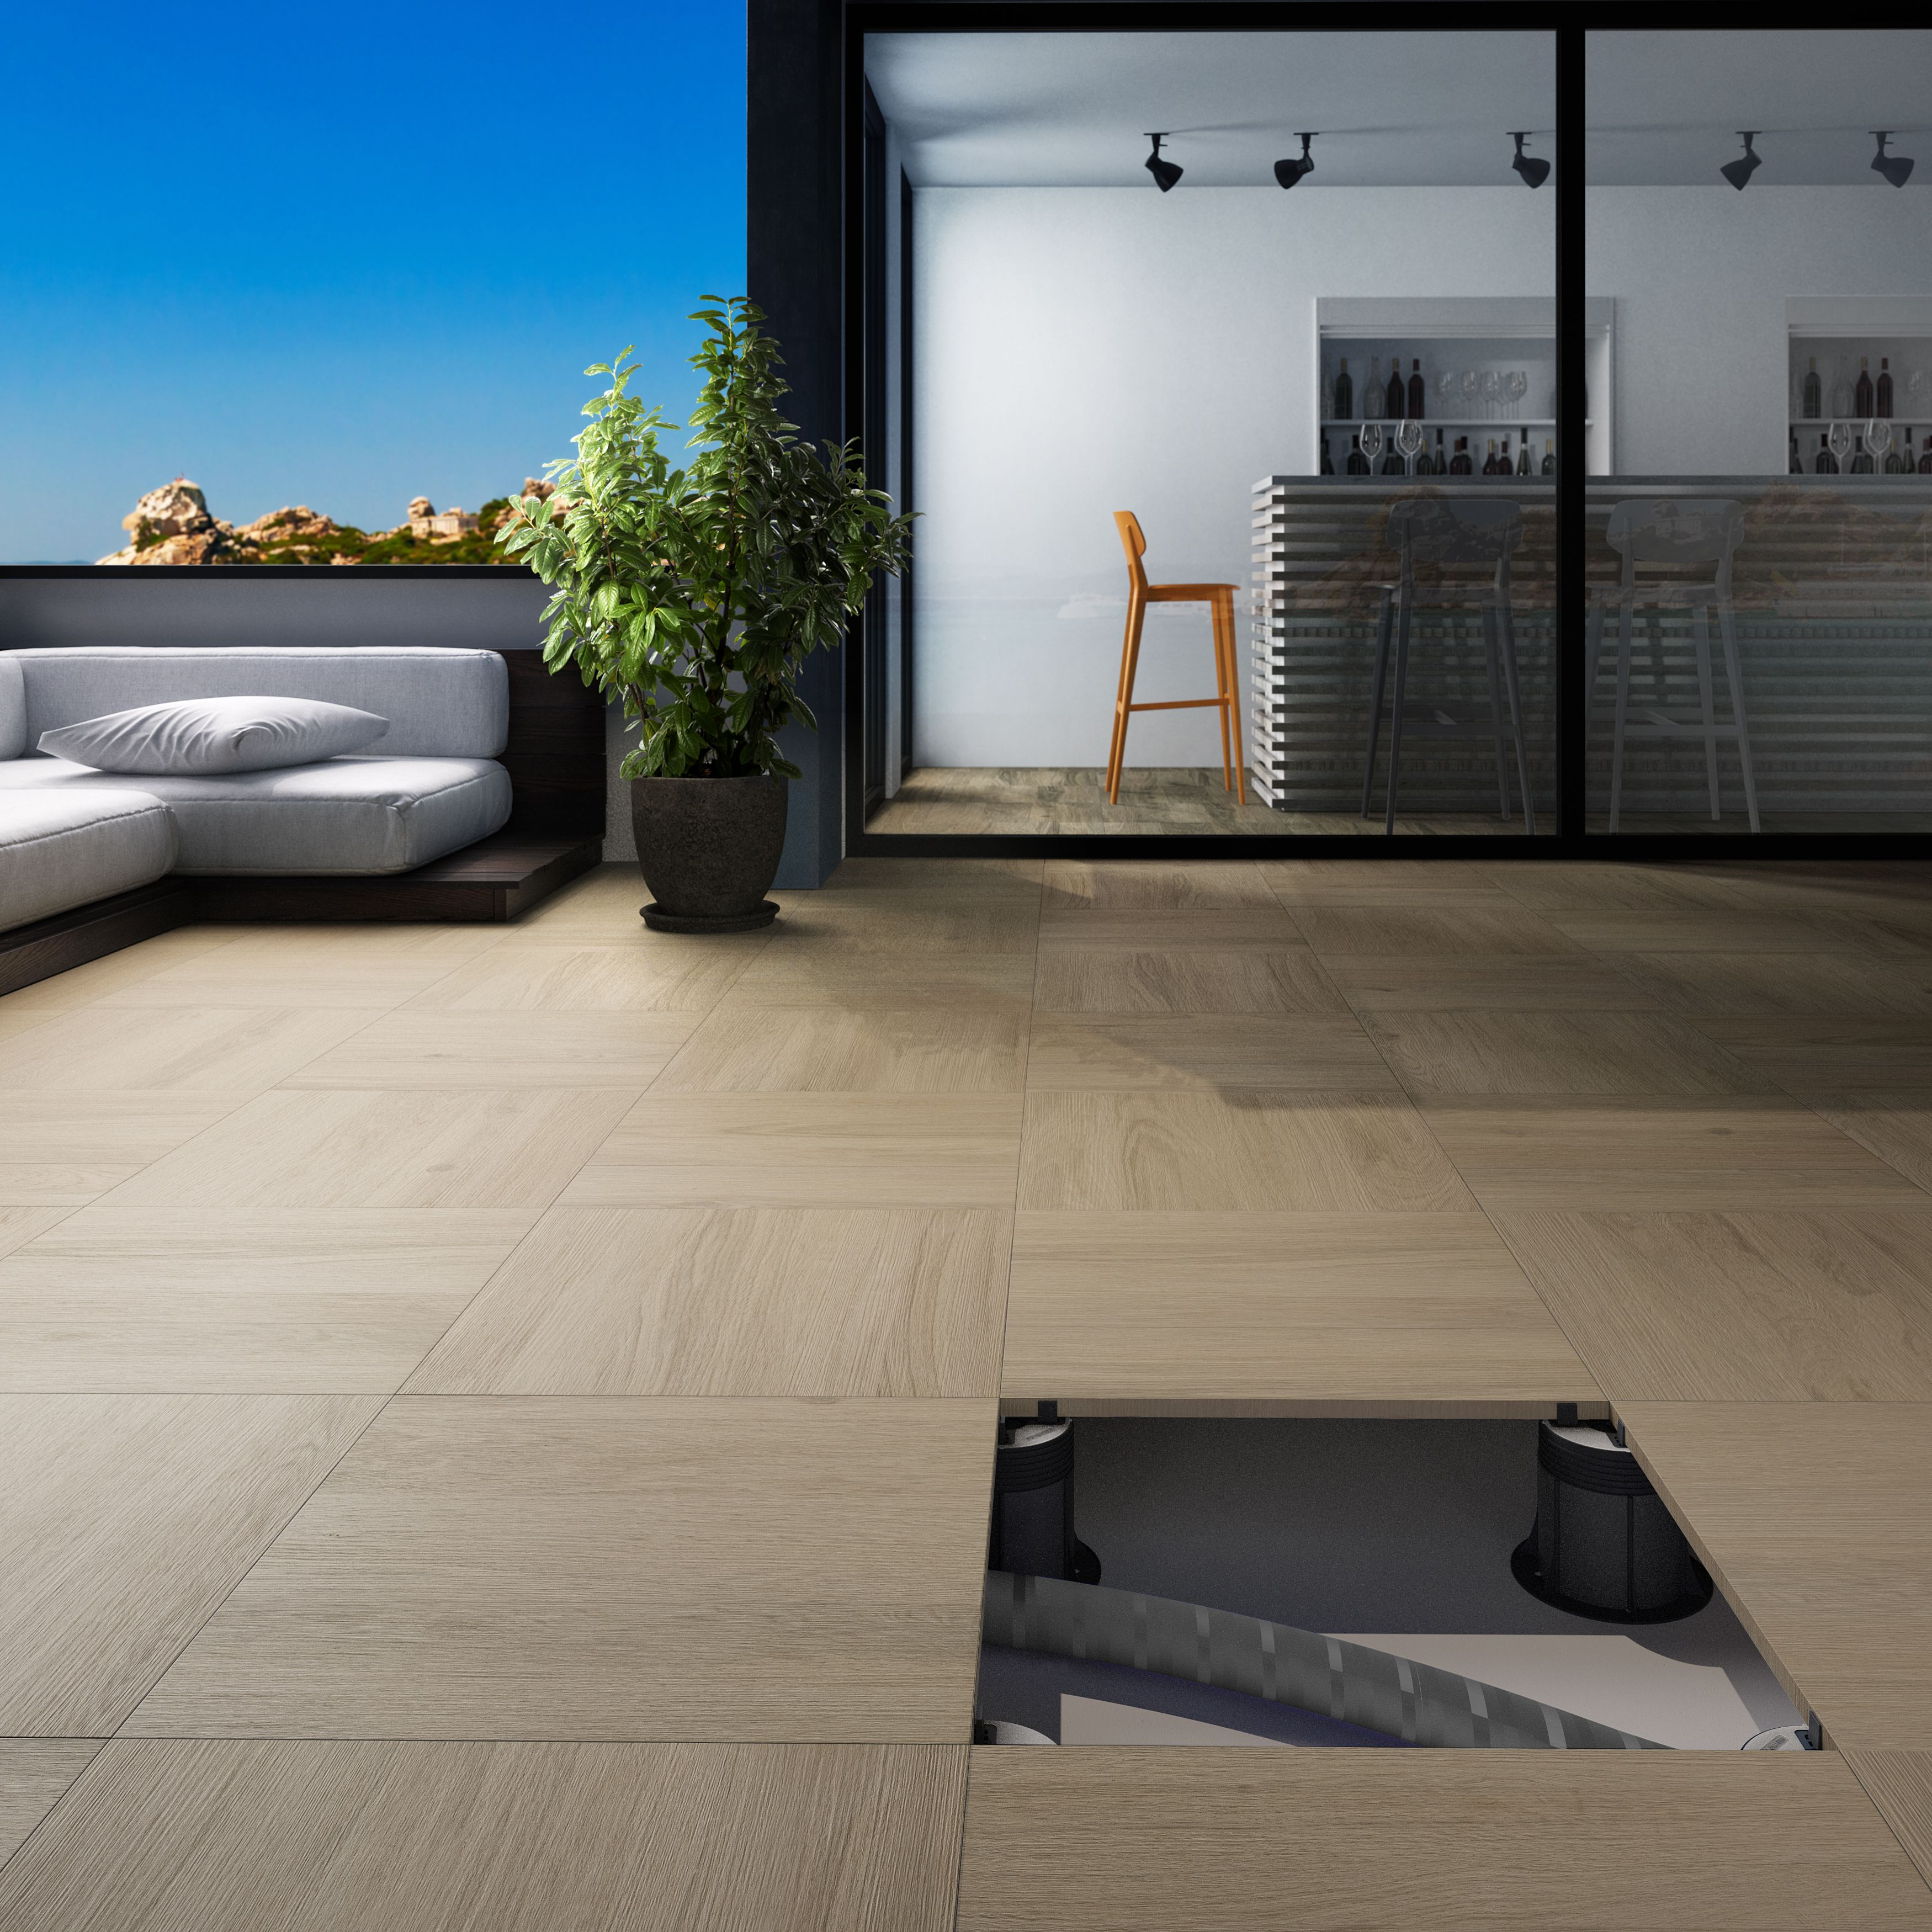 Outdoor Porcelain Tiles Can Be Installed On To Pedestals